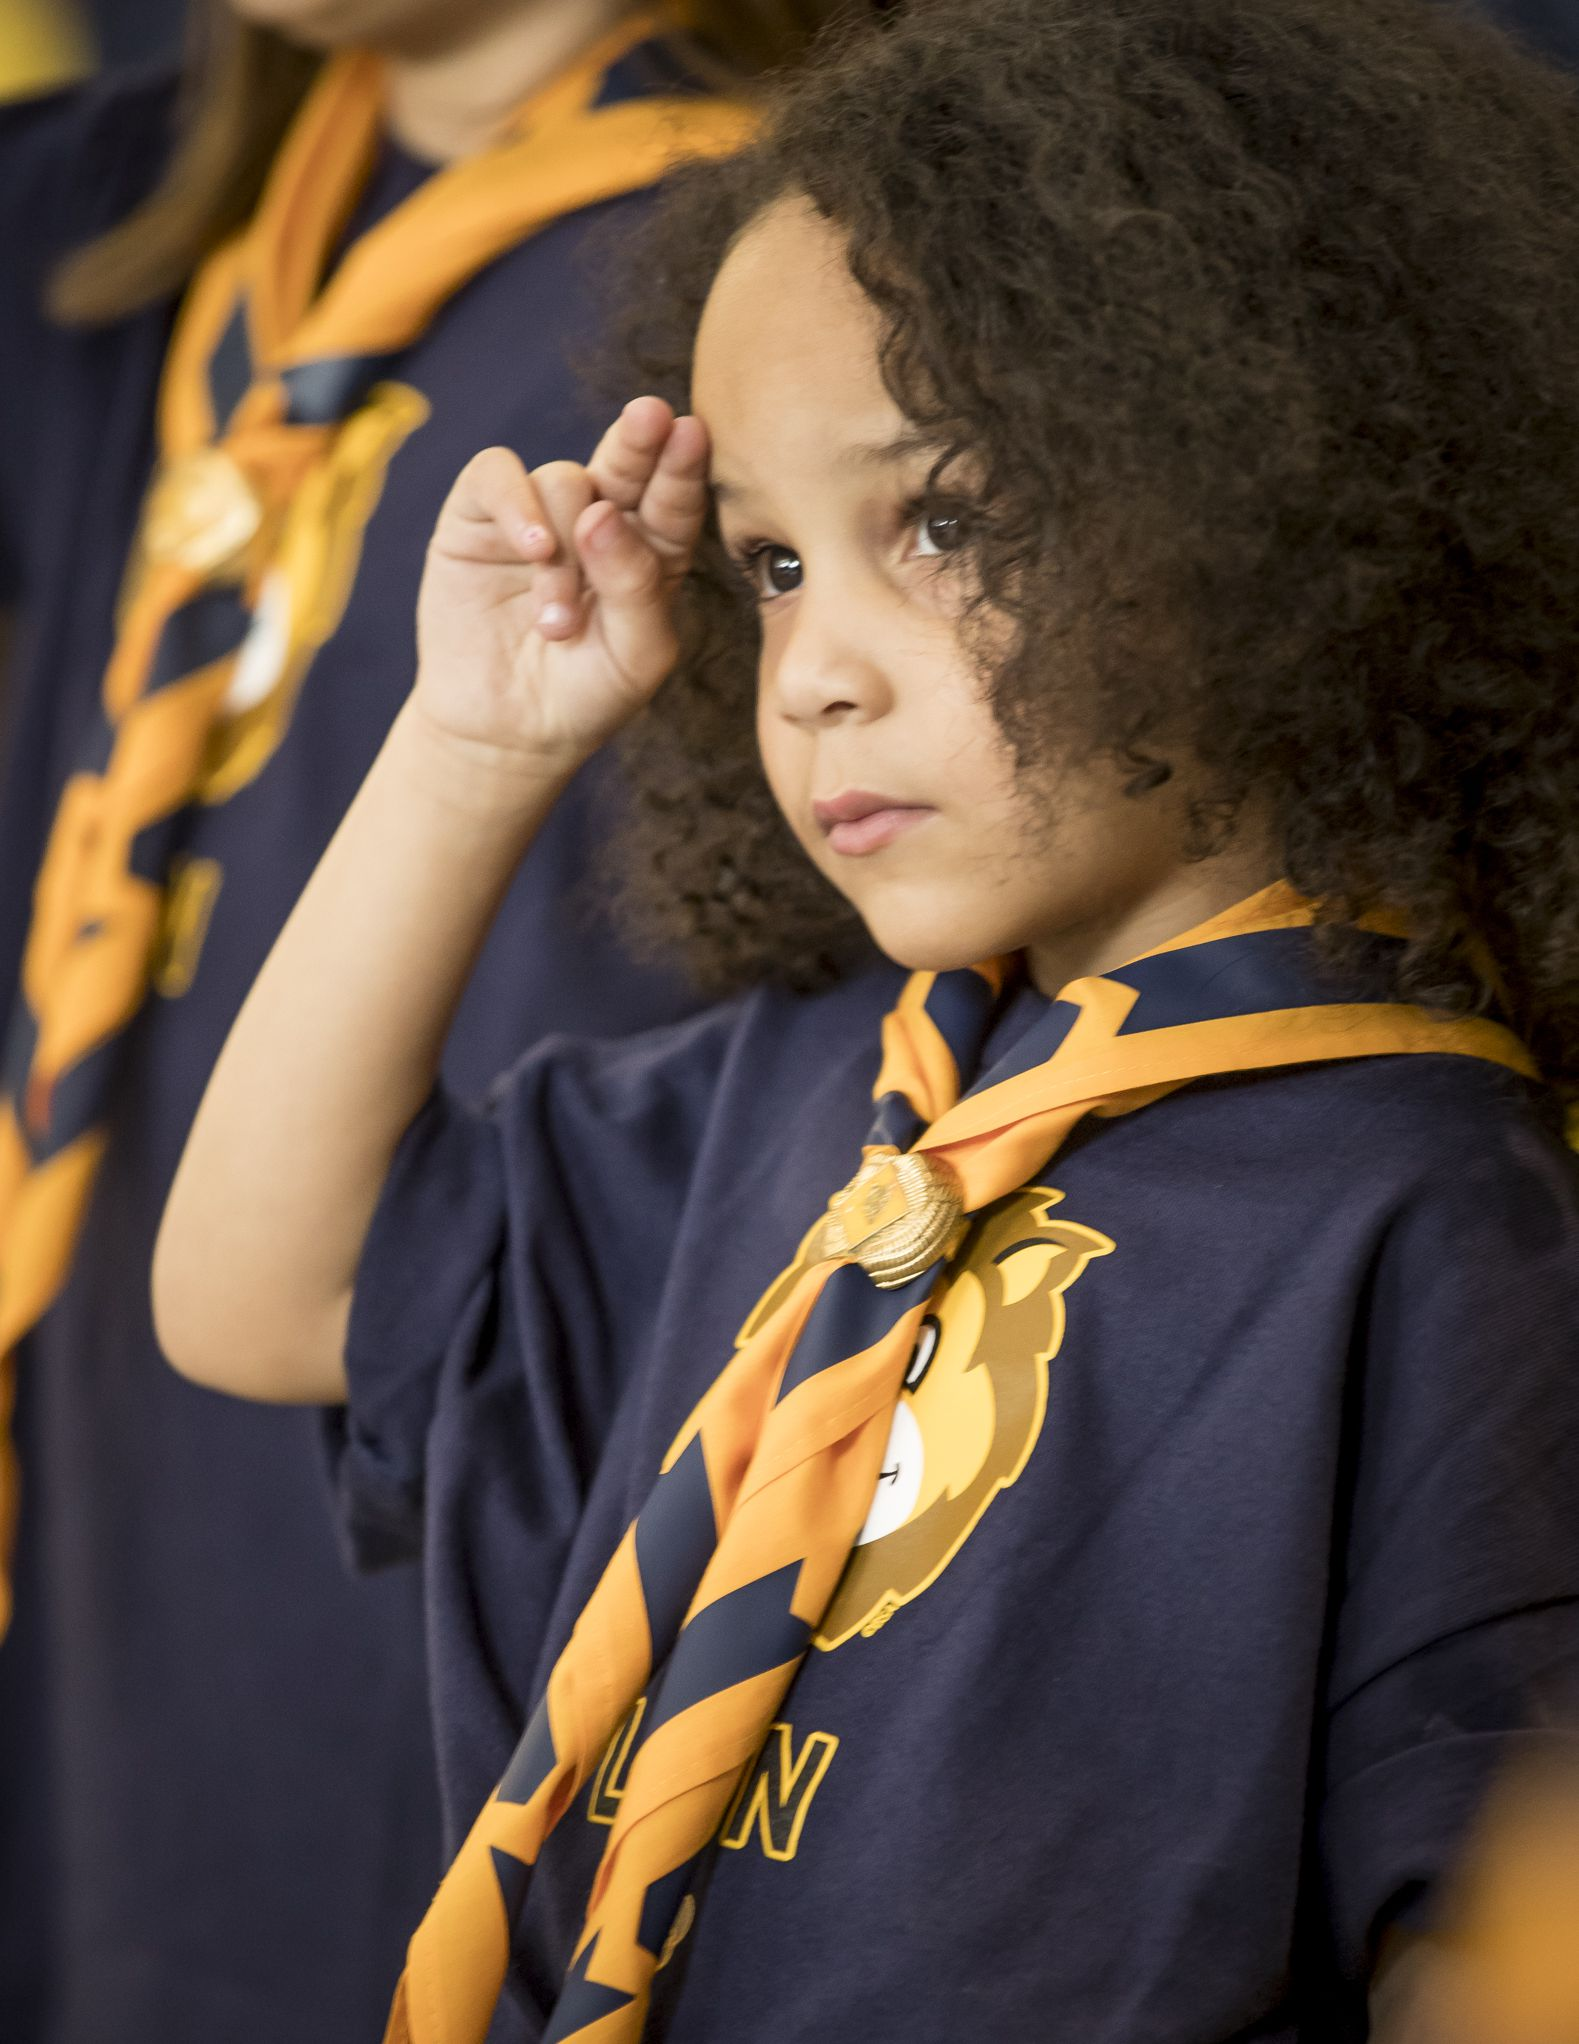 A young Cub Scout stands in uniform to salute with her fellow Scouts.